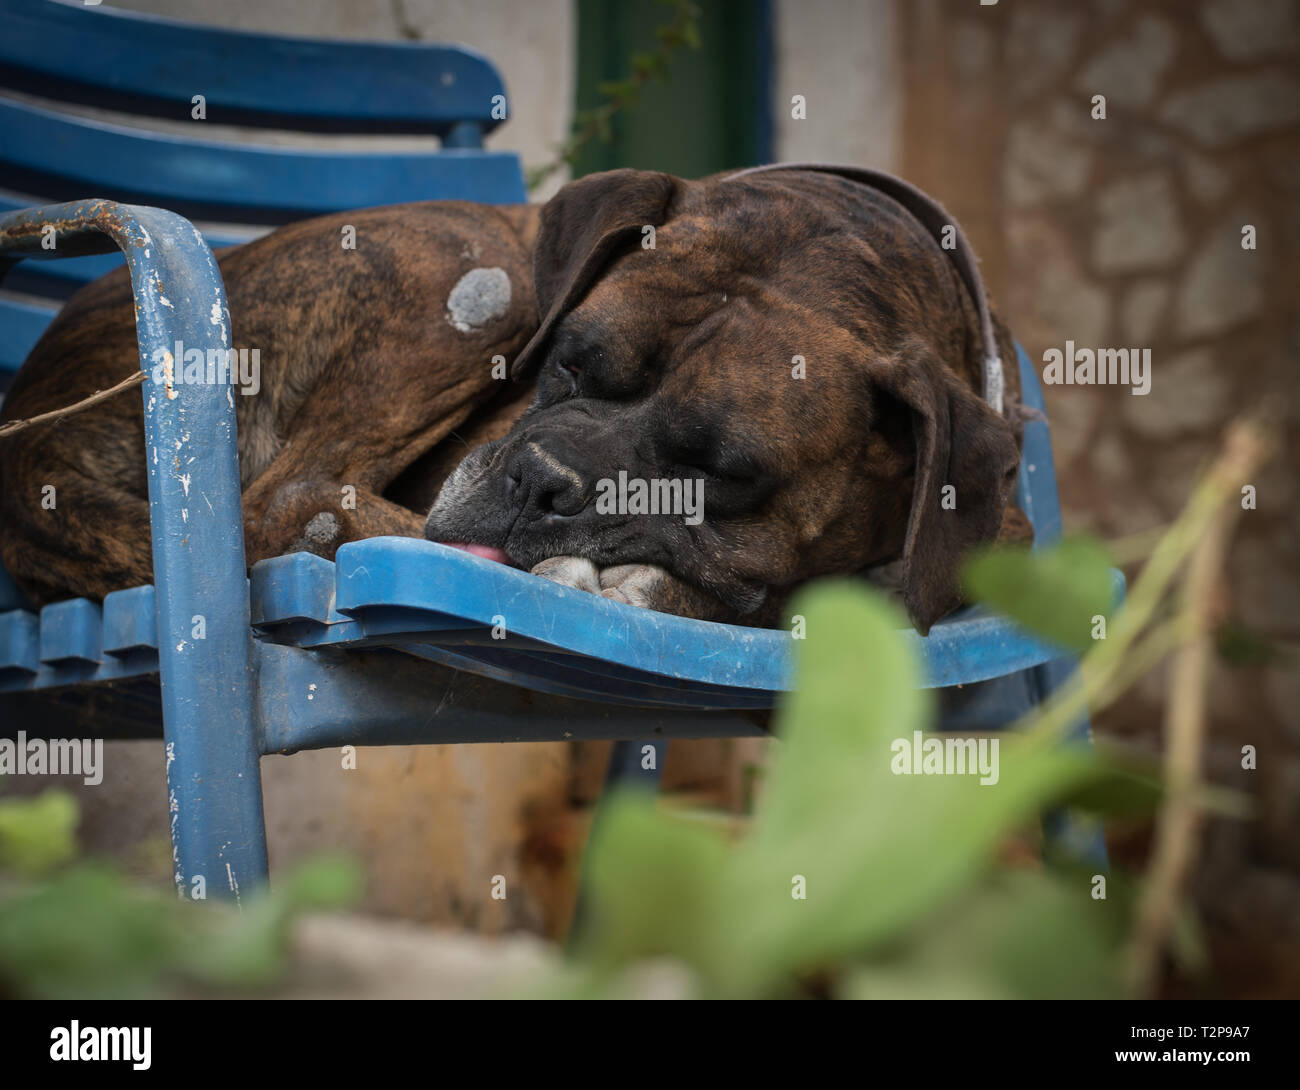 Sleeping dog on a chair - Stock Image